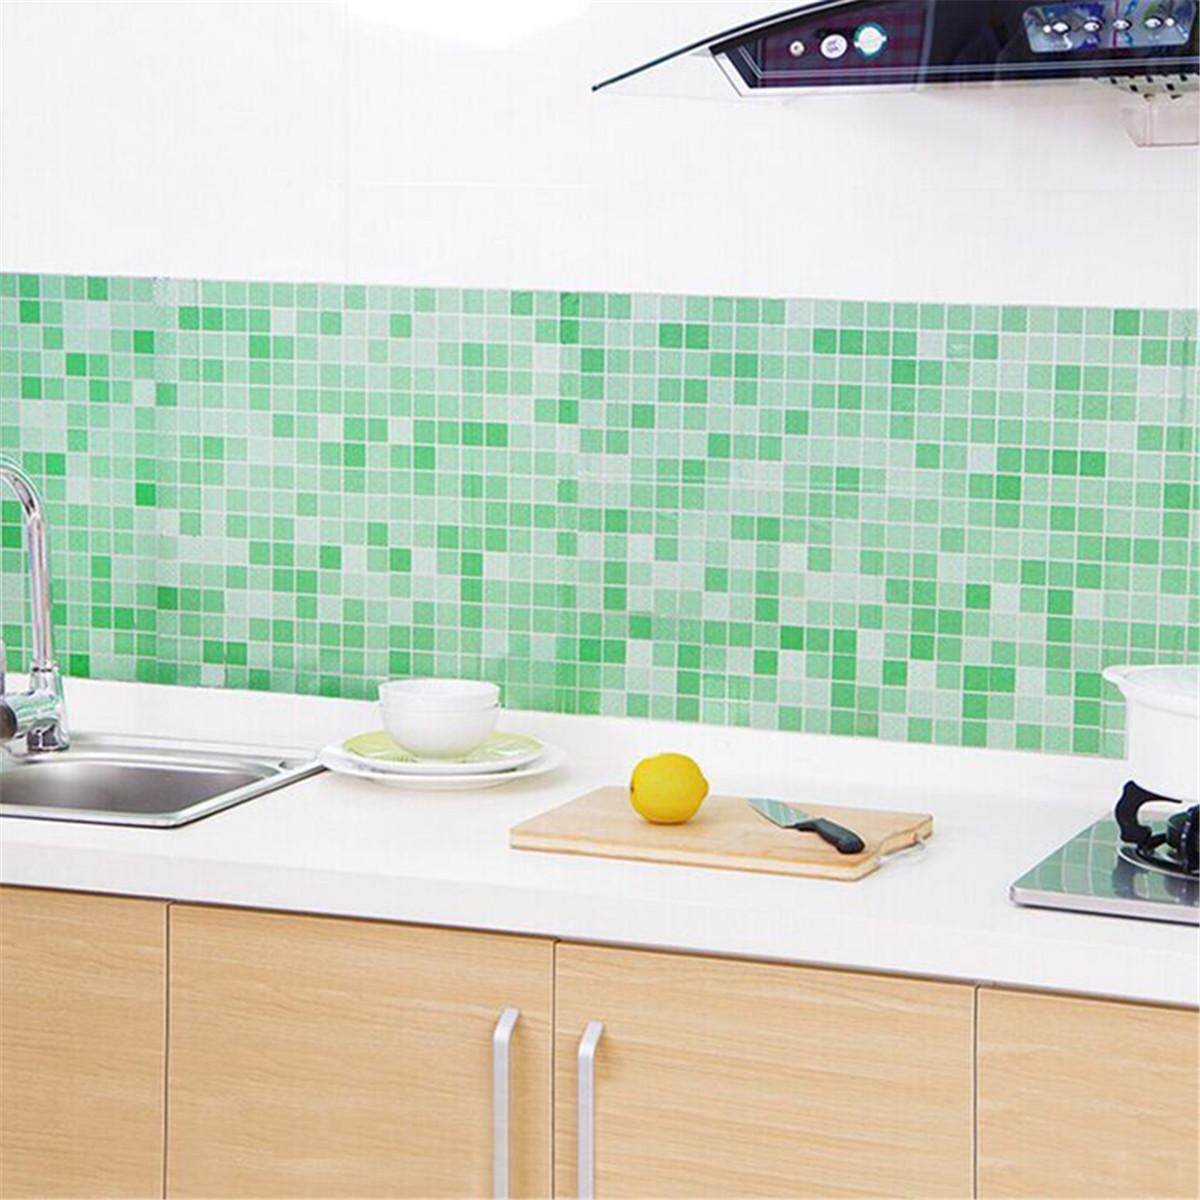 Self-Adhesive Wallpaper Wall Sticker PVC Mural Home Kitchen Decoration Gift